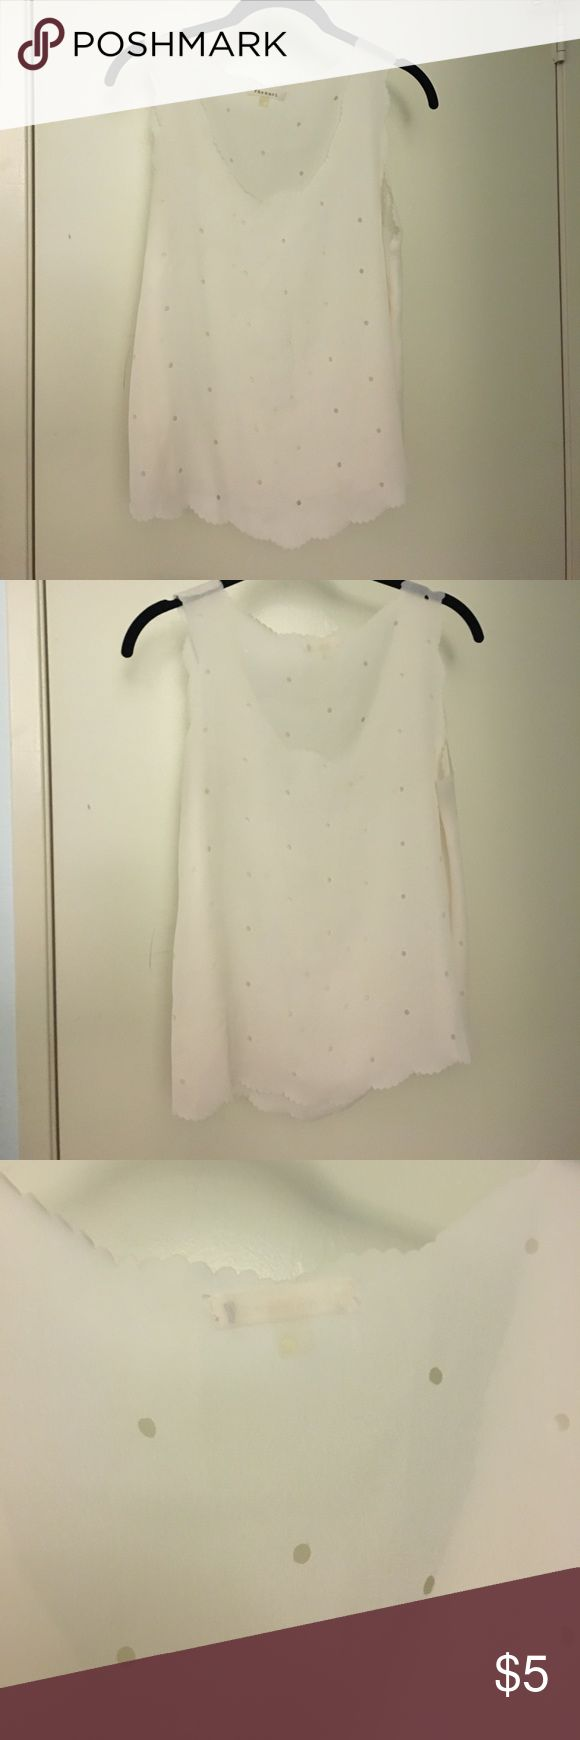 Sheer white tank I'm moving and can't take a lot with me. Just need to move these quickly. Whatever is left is going to Goodwill. All of this needs to go! Bundle and make me an offer to save $$! Seriously just needs to go! Urban Outfitters Tops Tank Tops